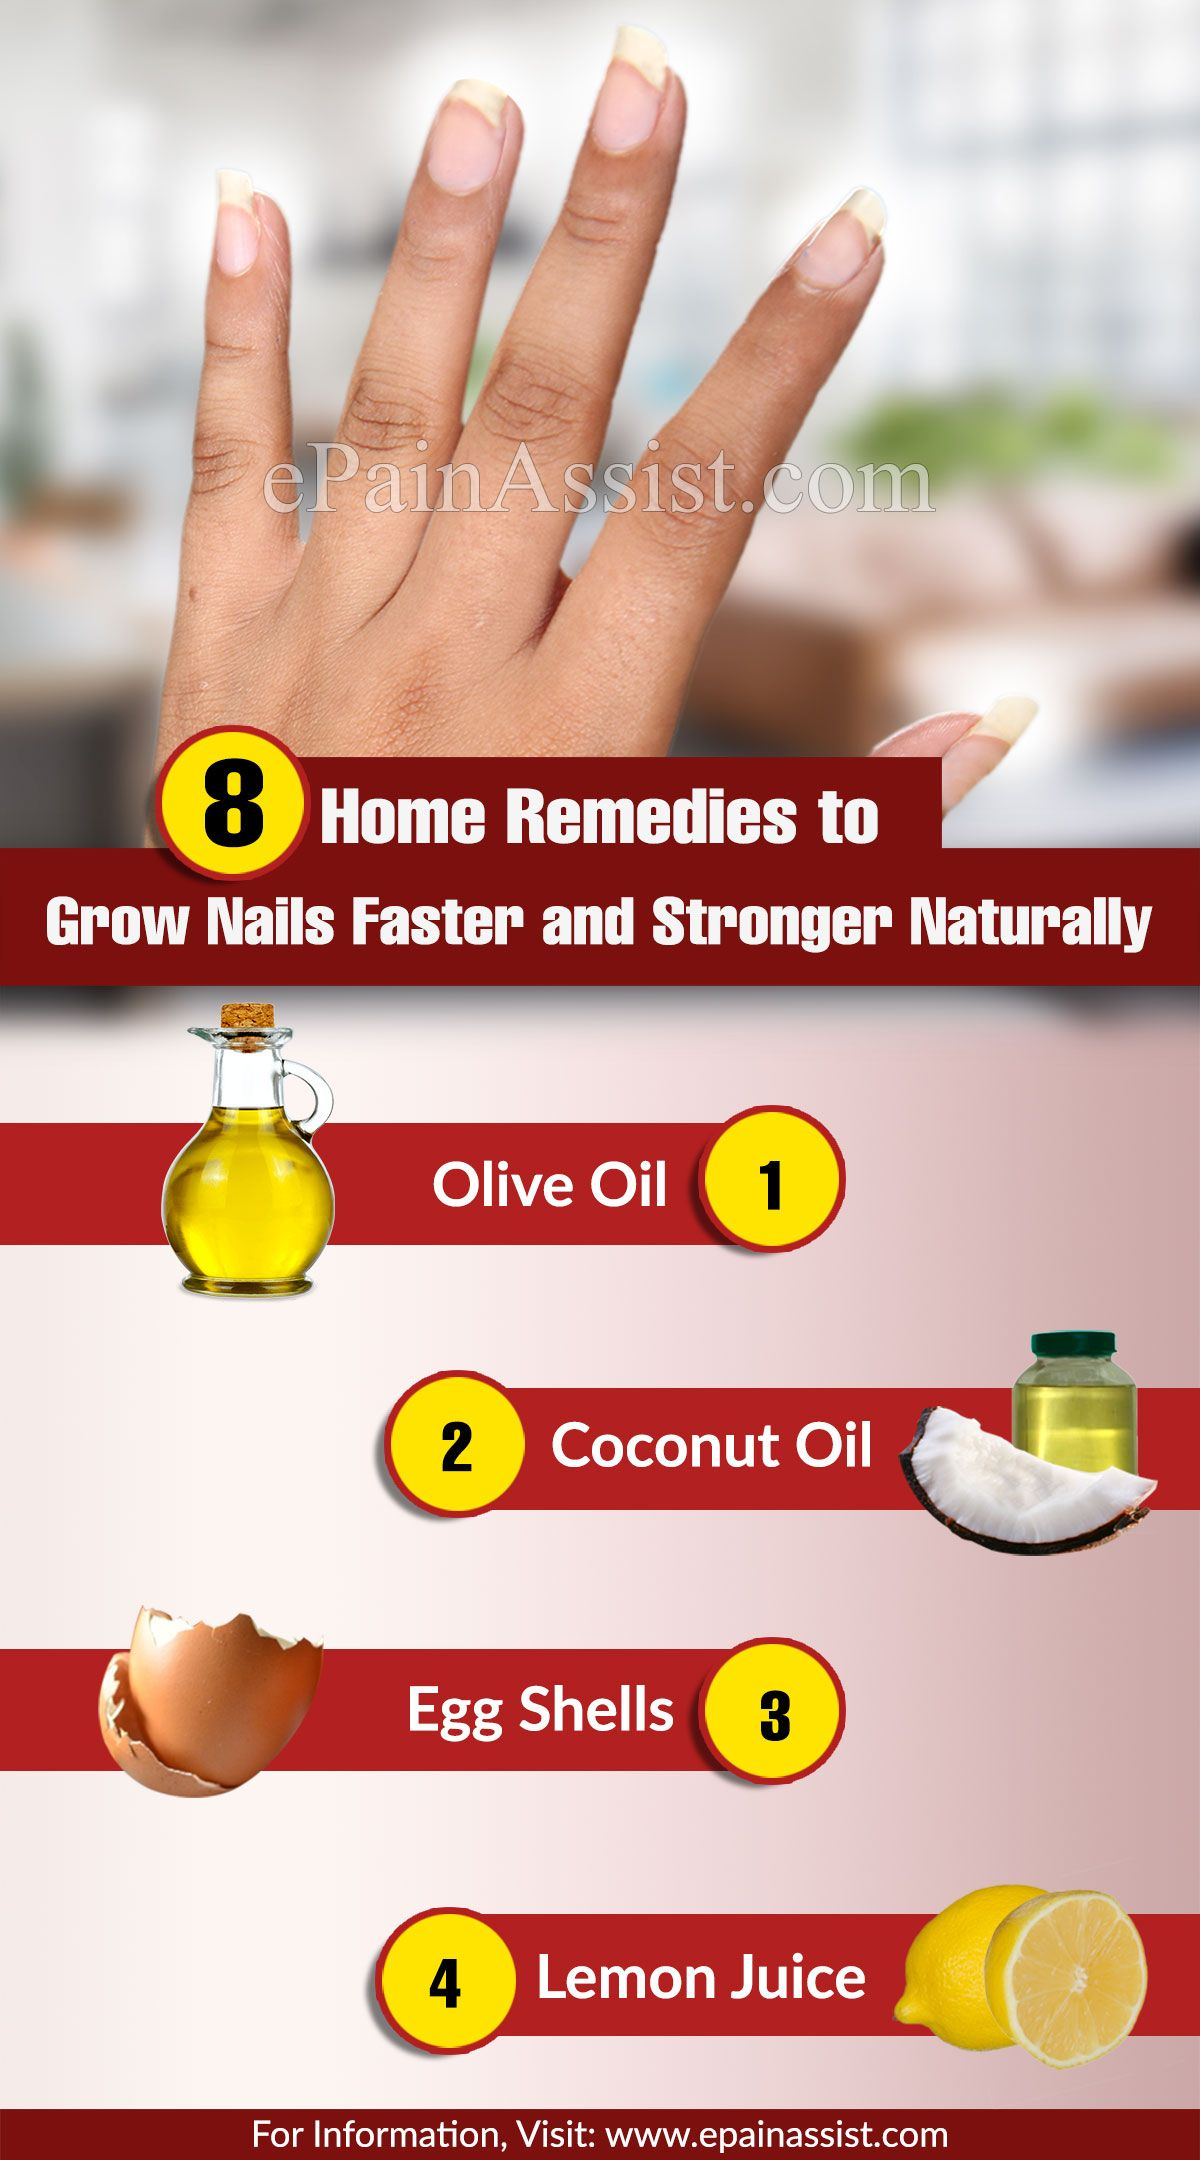 Home Remedies To Grow Nails Faster And Stronger Naturally How To Grow Nails Grow Nails Faster Nail Growth Tips